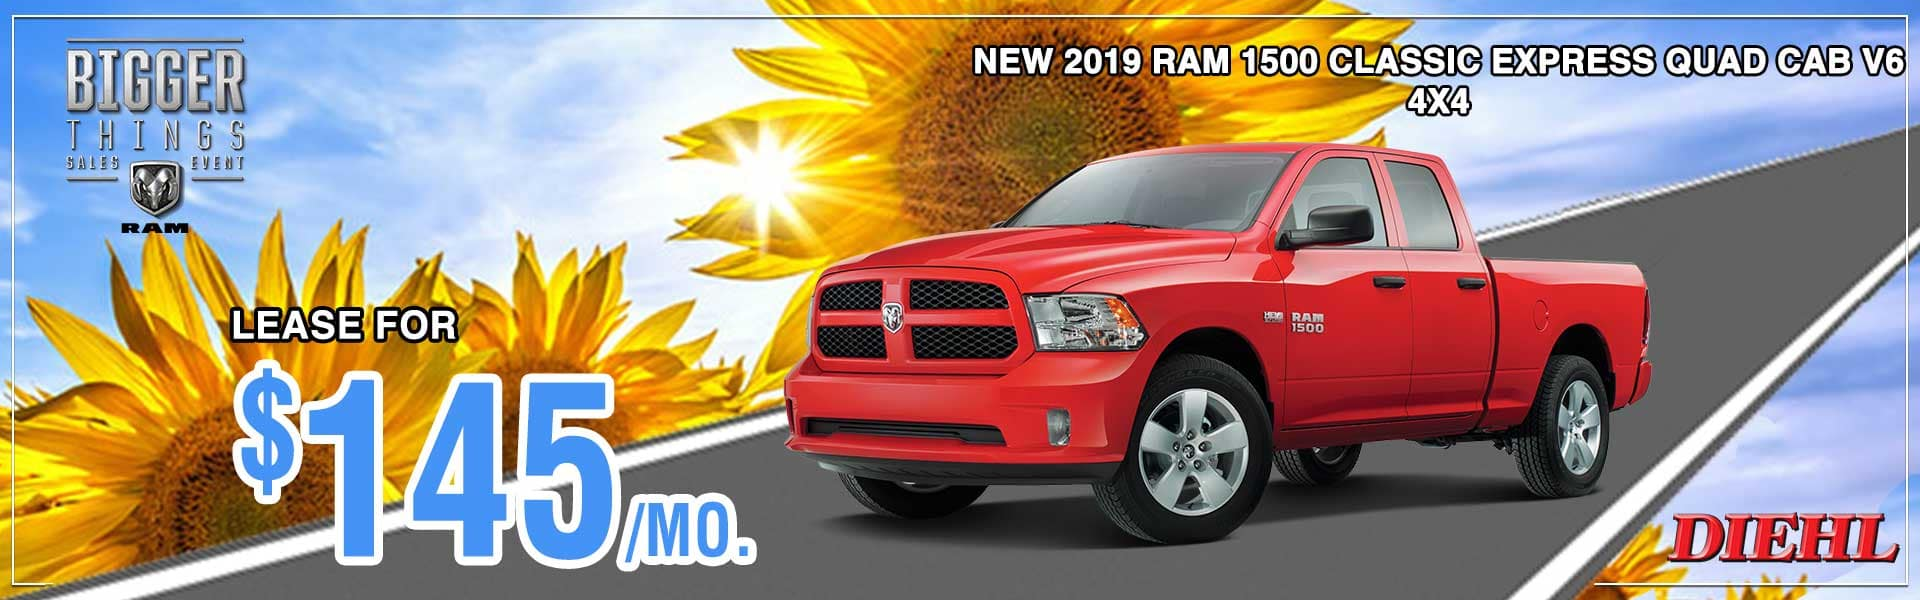 Diehl of Robinson Chrysler Jeep Dodge Ram. Robinson Township, PA 15136. New and used sales, service for all makes and models, parts, accessories, Mopar, collision center body shop. 2019 RAM 1500 CLASSIC